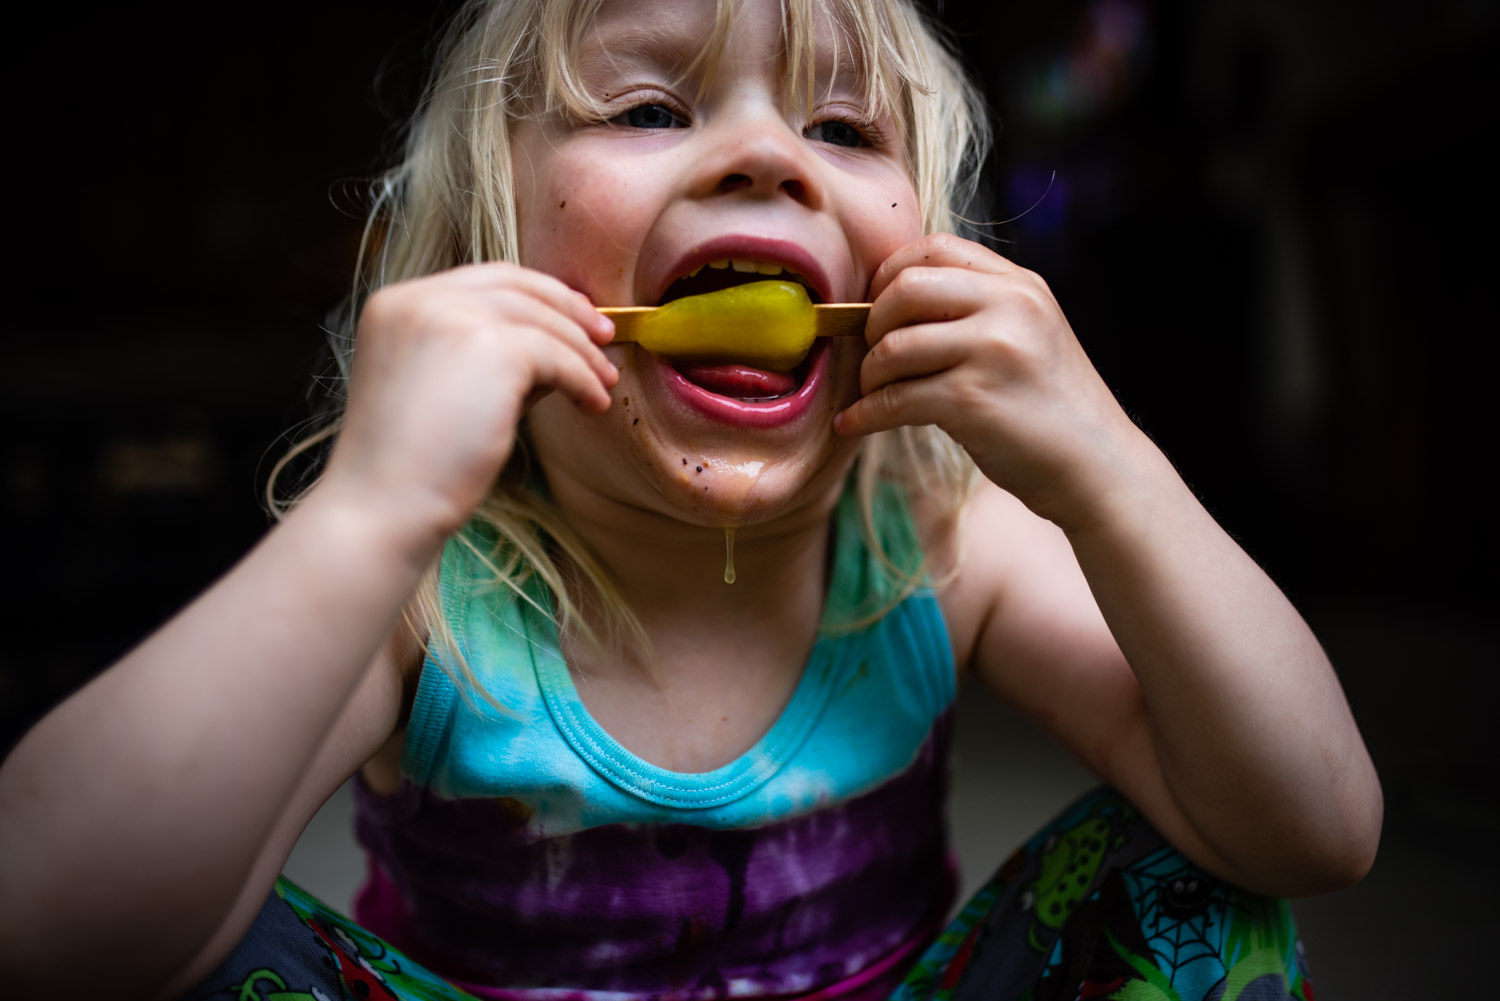 A little toddler boy sits licking an ice lolly during this fun, relaxed, unposed family photo shoot.